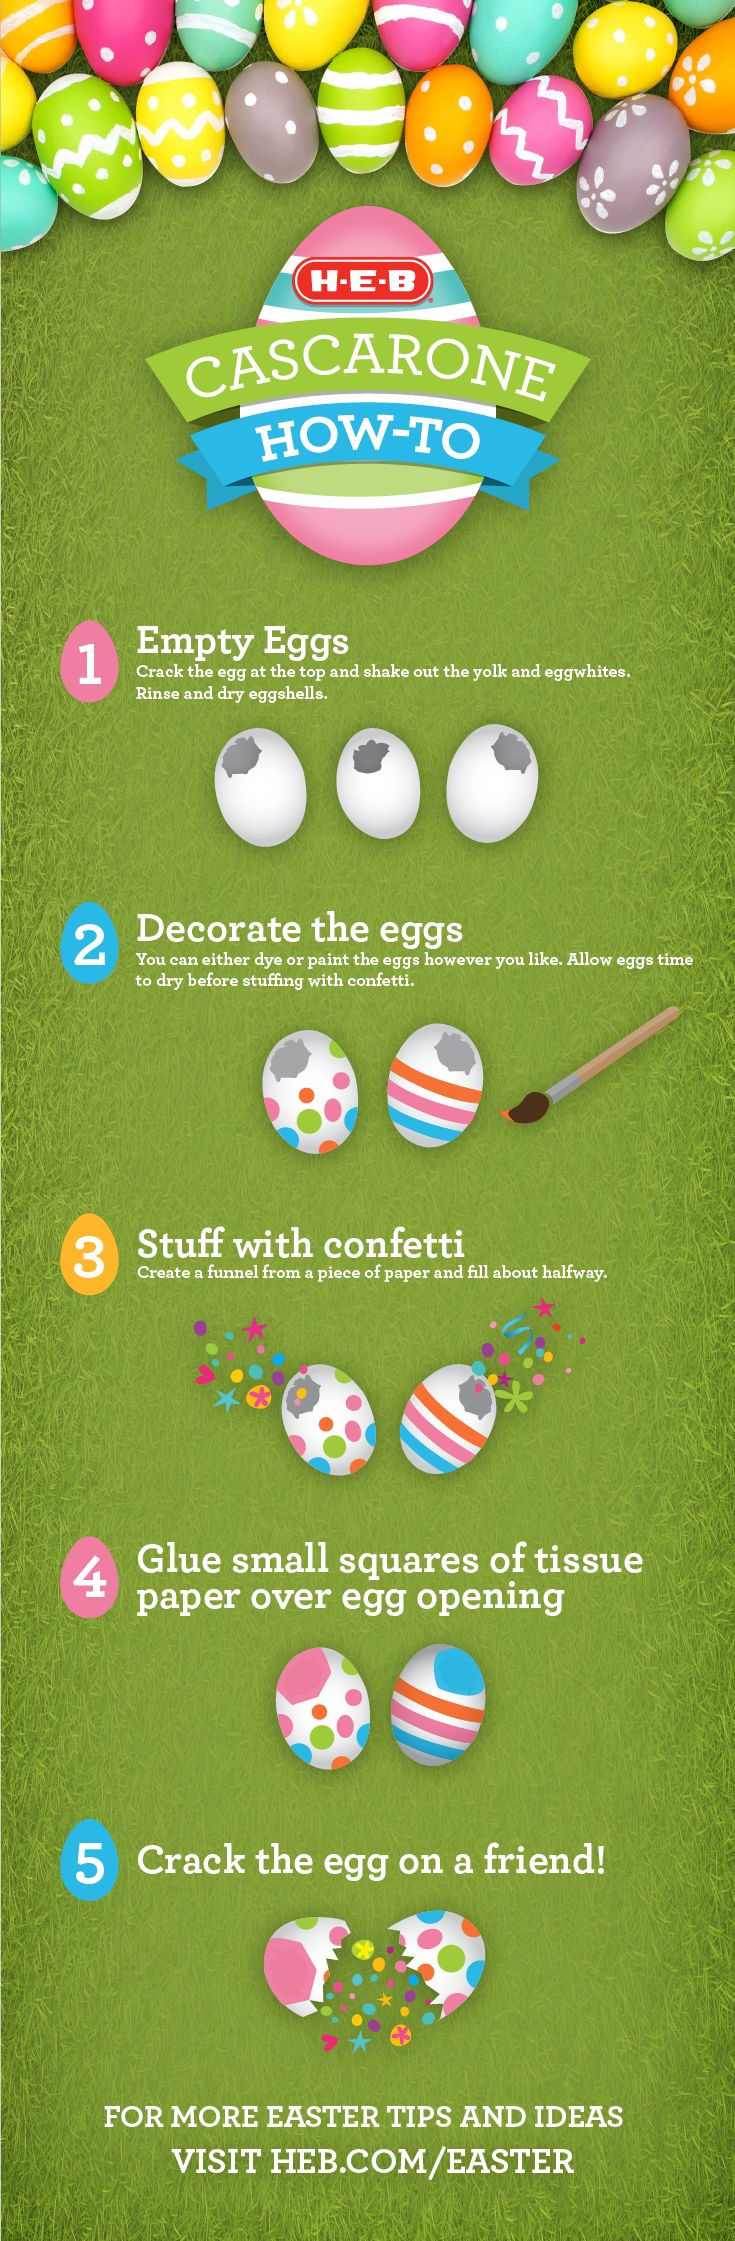 Easter ideas part 3 of 3 real deep stuff - 77 Best Easter Ideas For Children S Ministry And Sunday School Images On Pinterest Easter Ideas Sunday School And Ministry